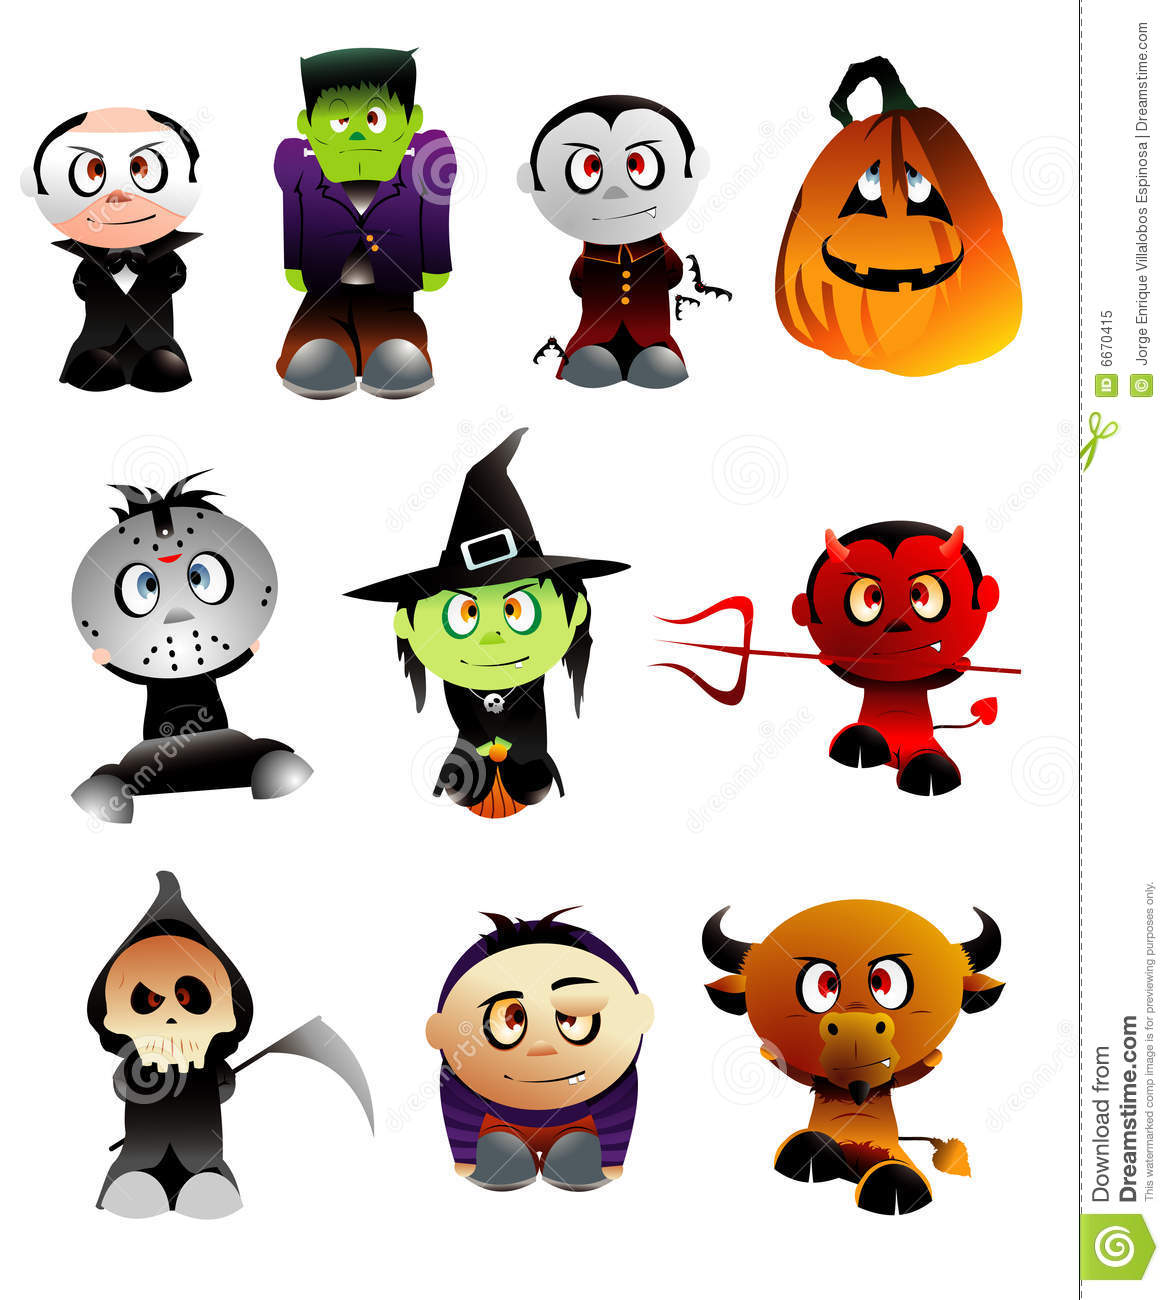 halloween vector characters - Download Halloween Pictures Free